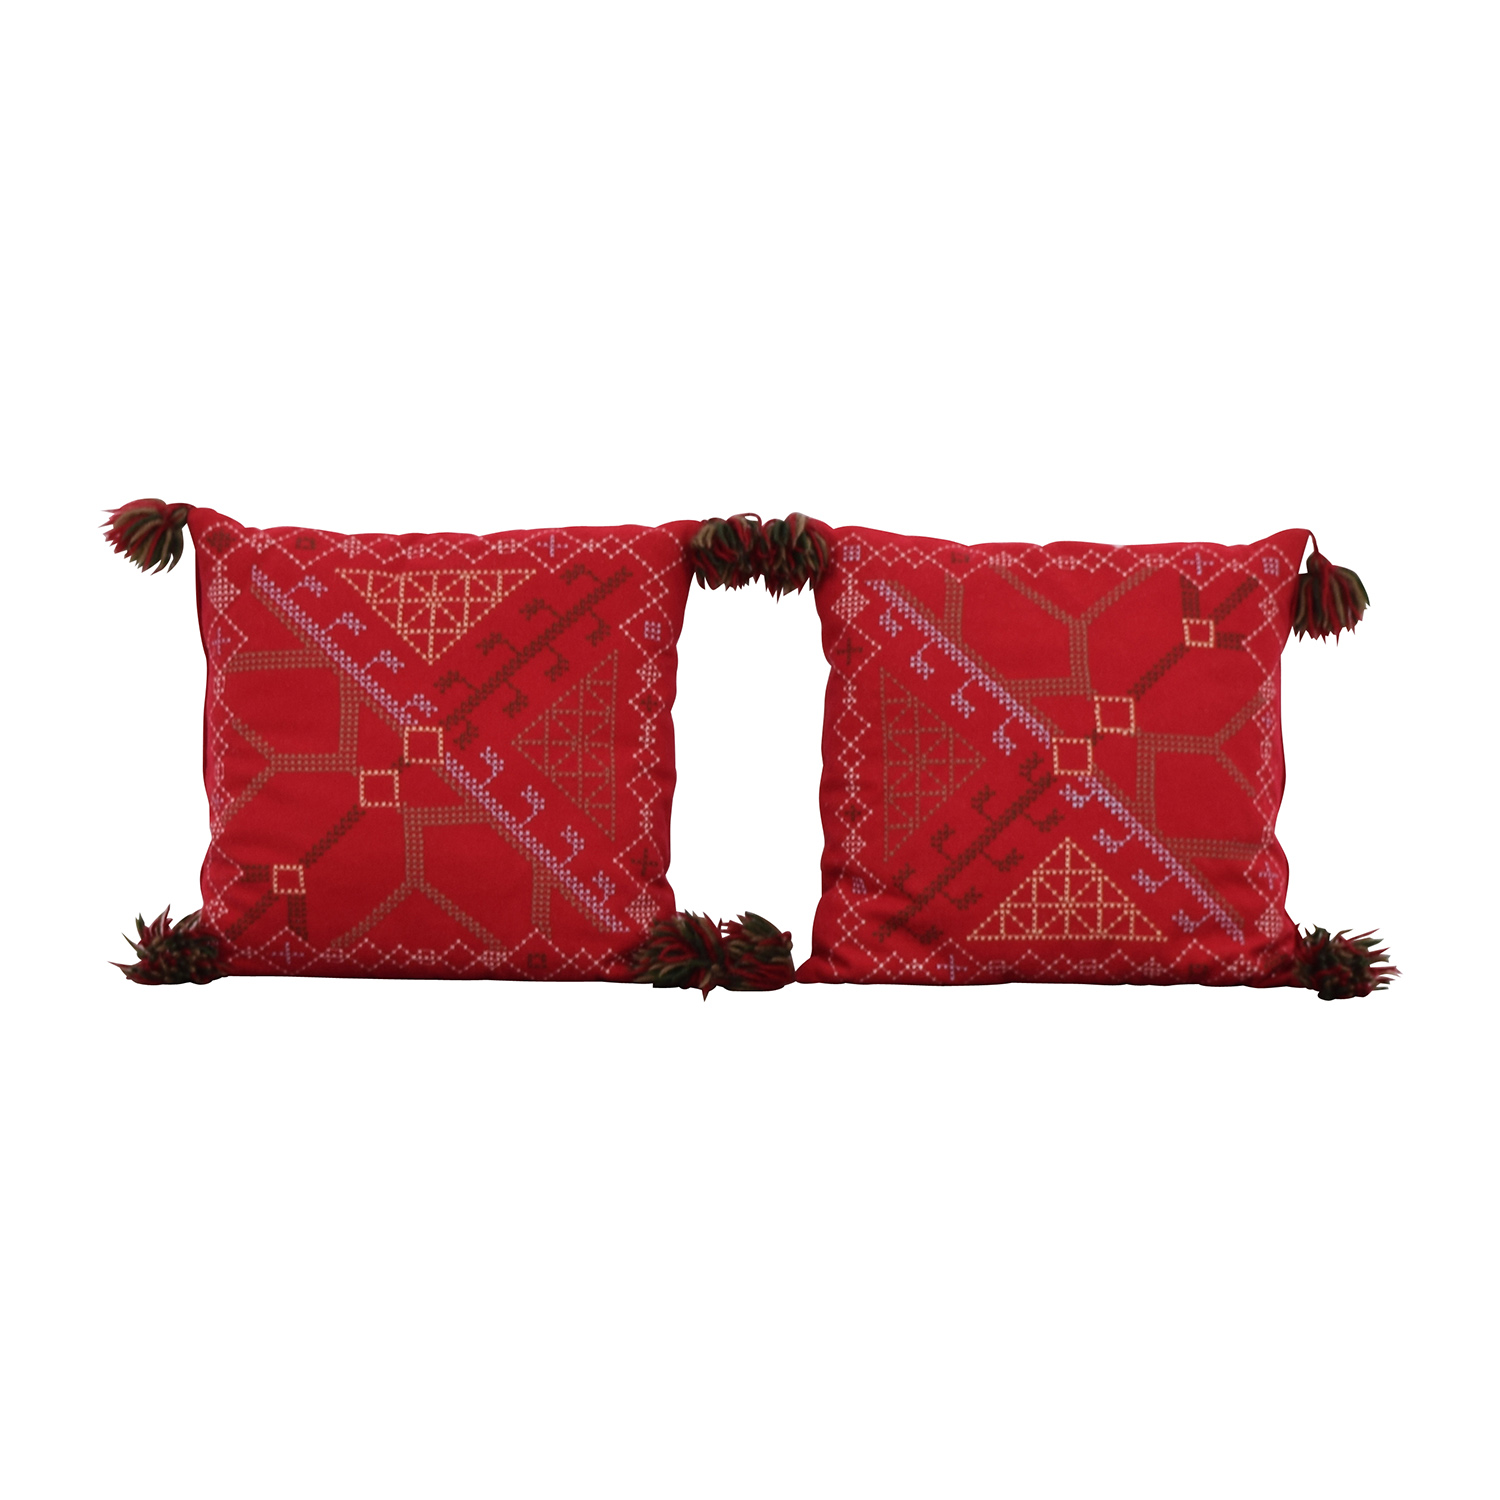 buy Red Decorative Toss Pillows Decor